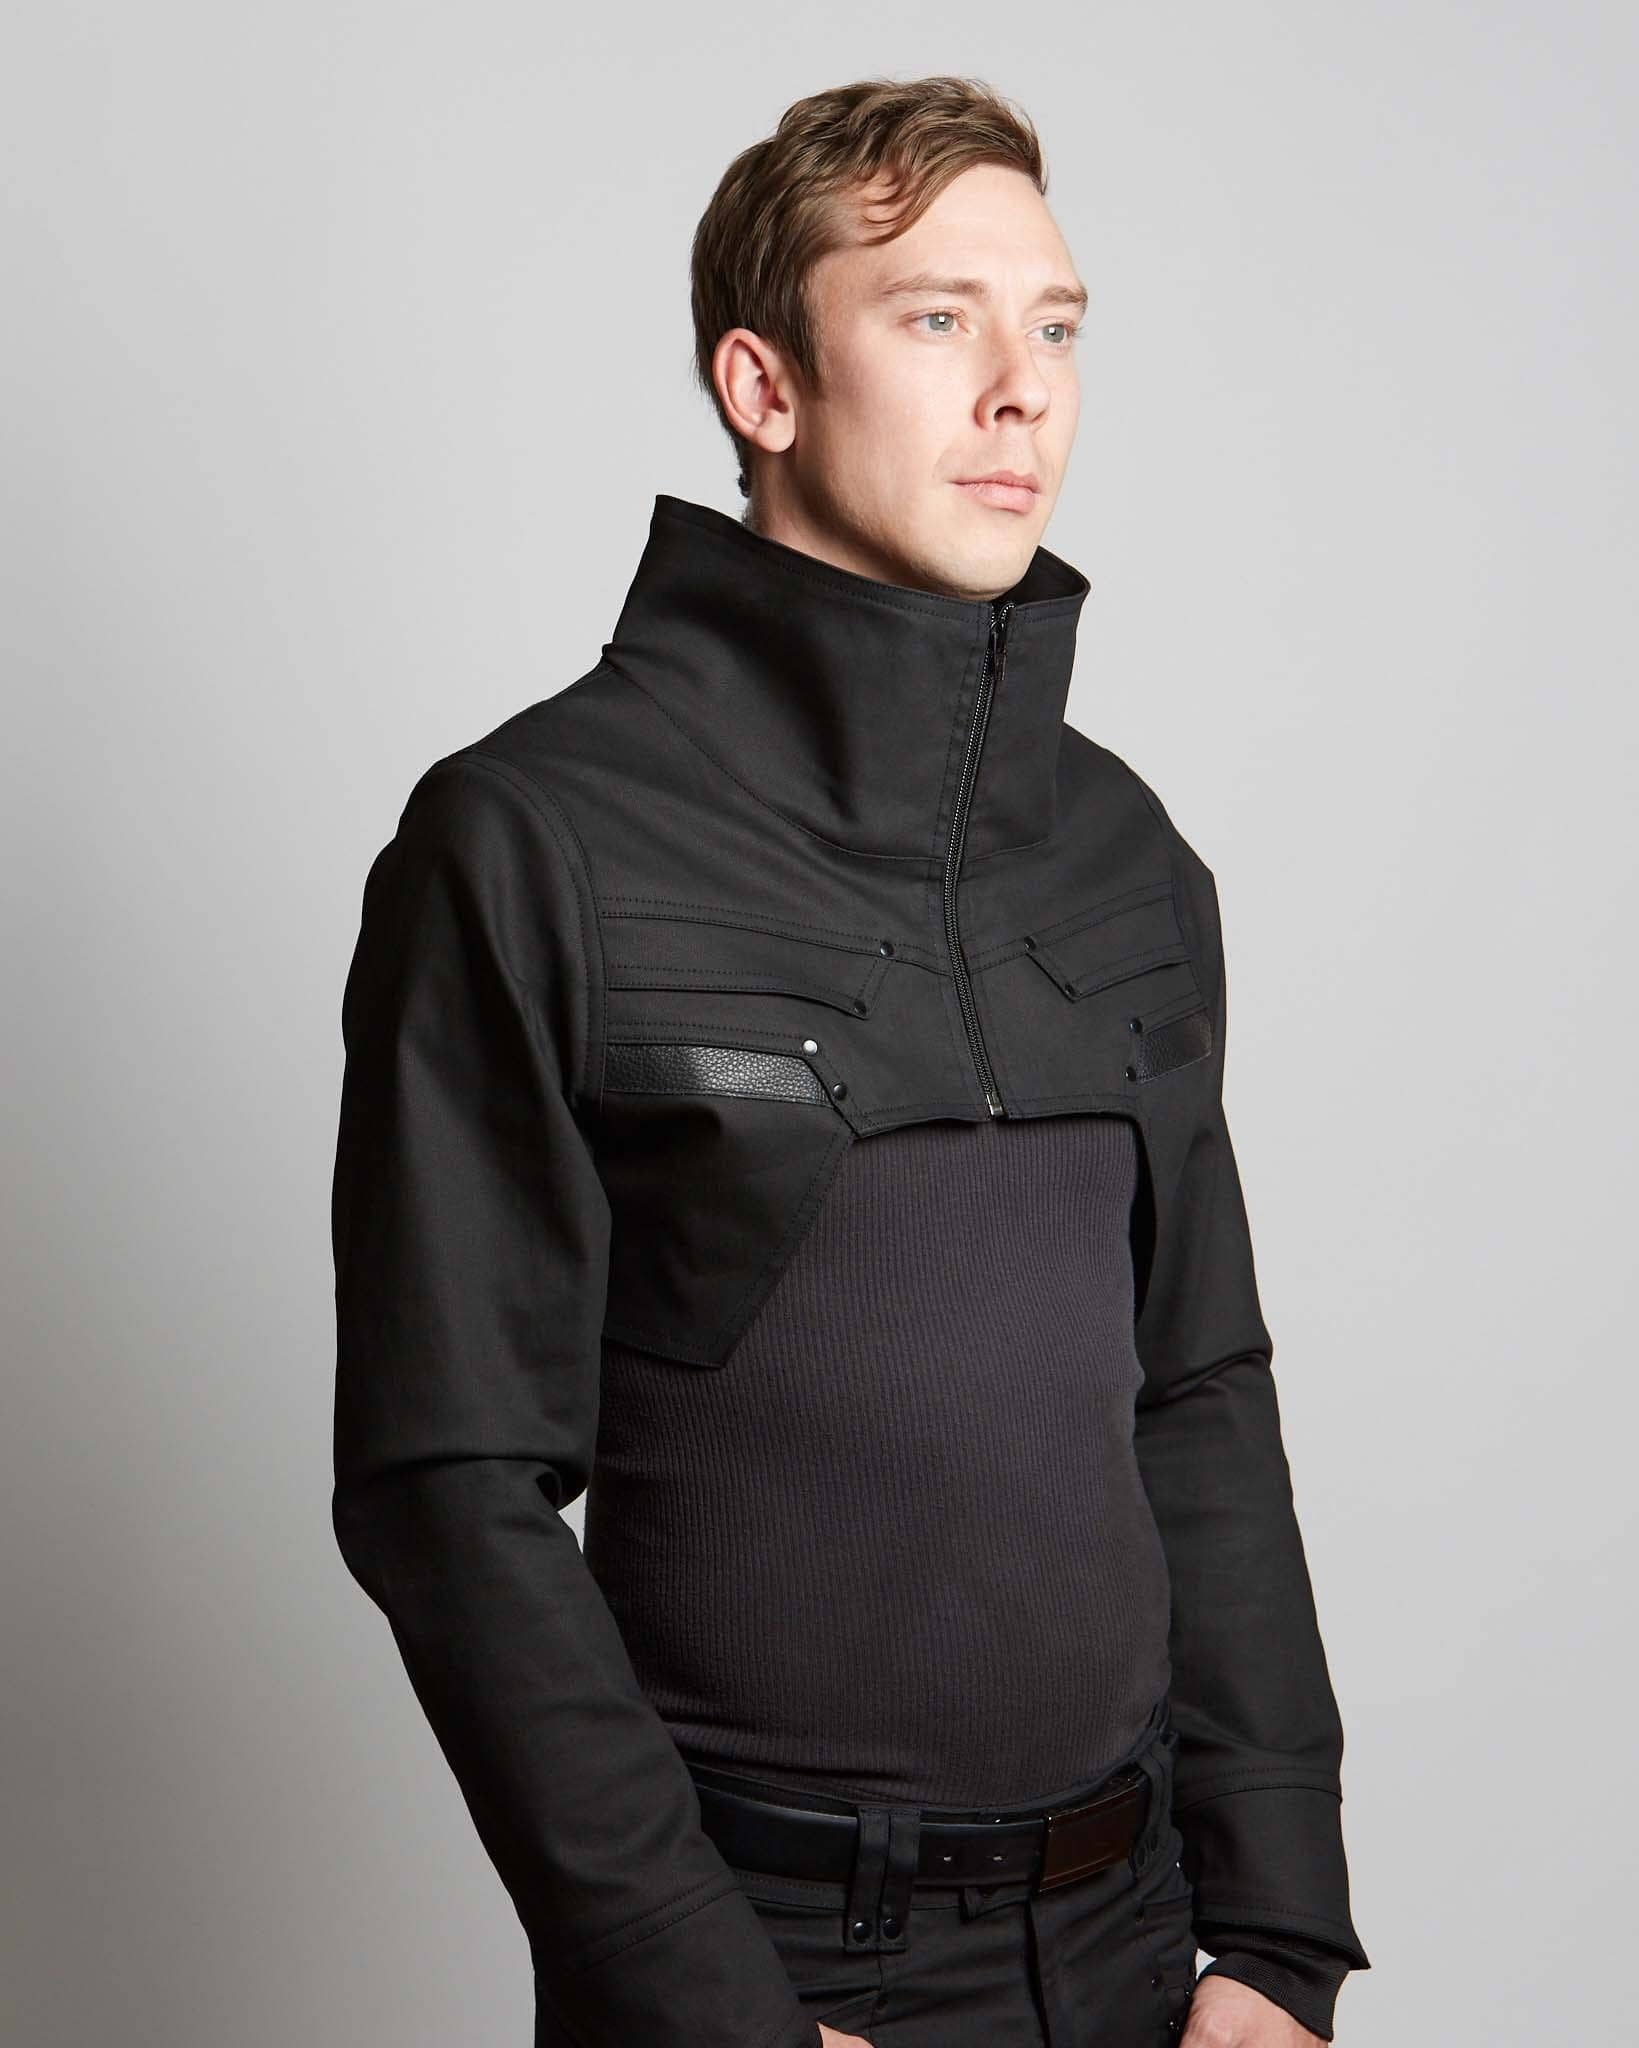 cyberpunk style crop top for men and women with leather accents